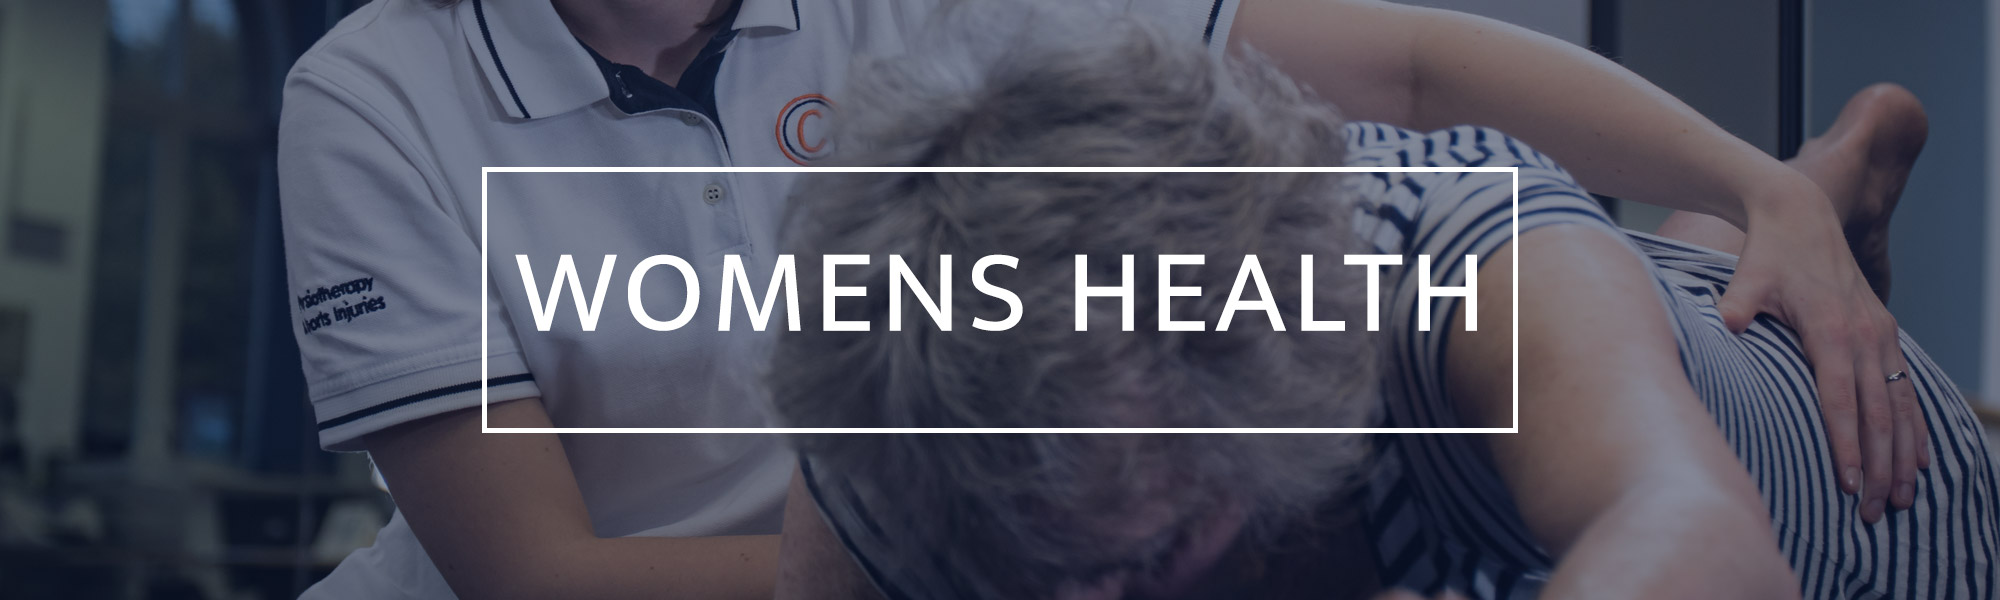 Womens Health Header 2